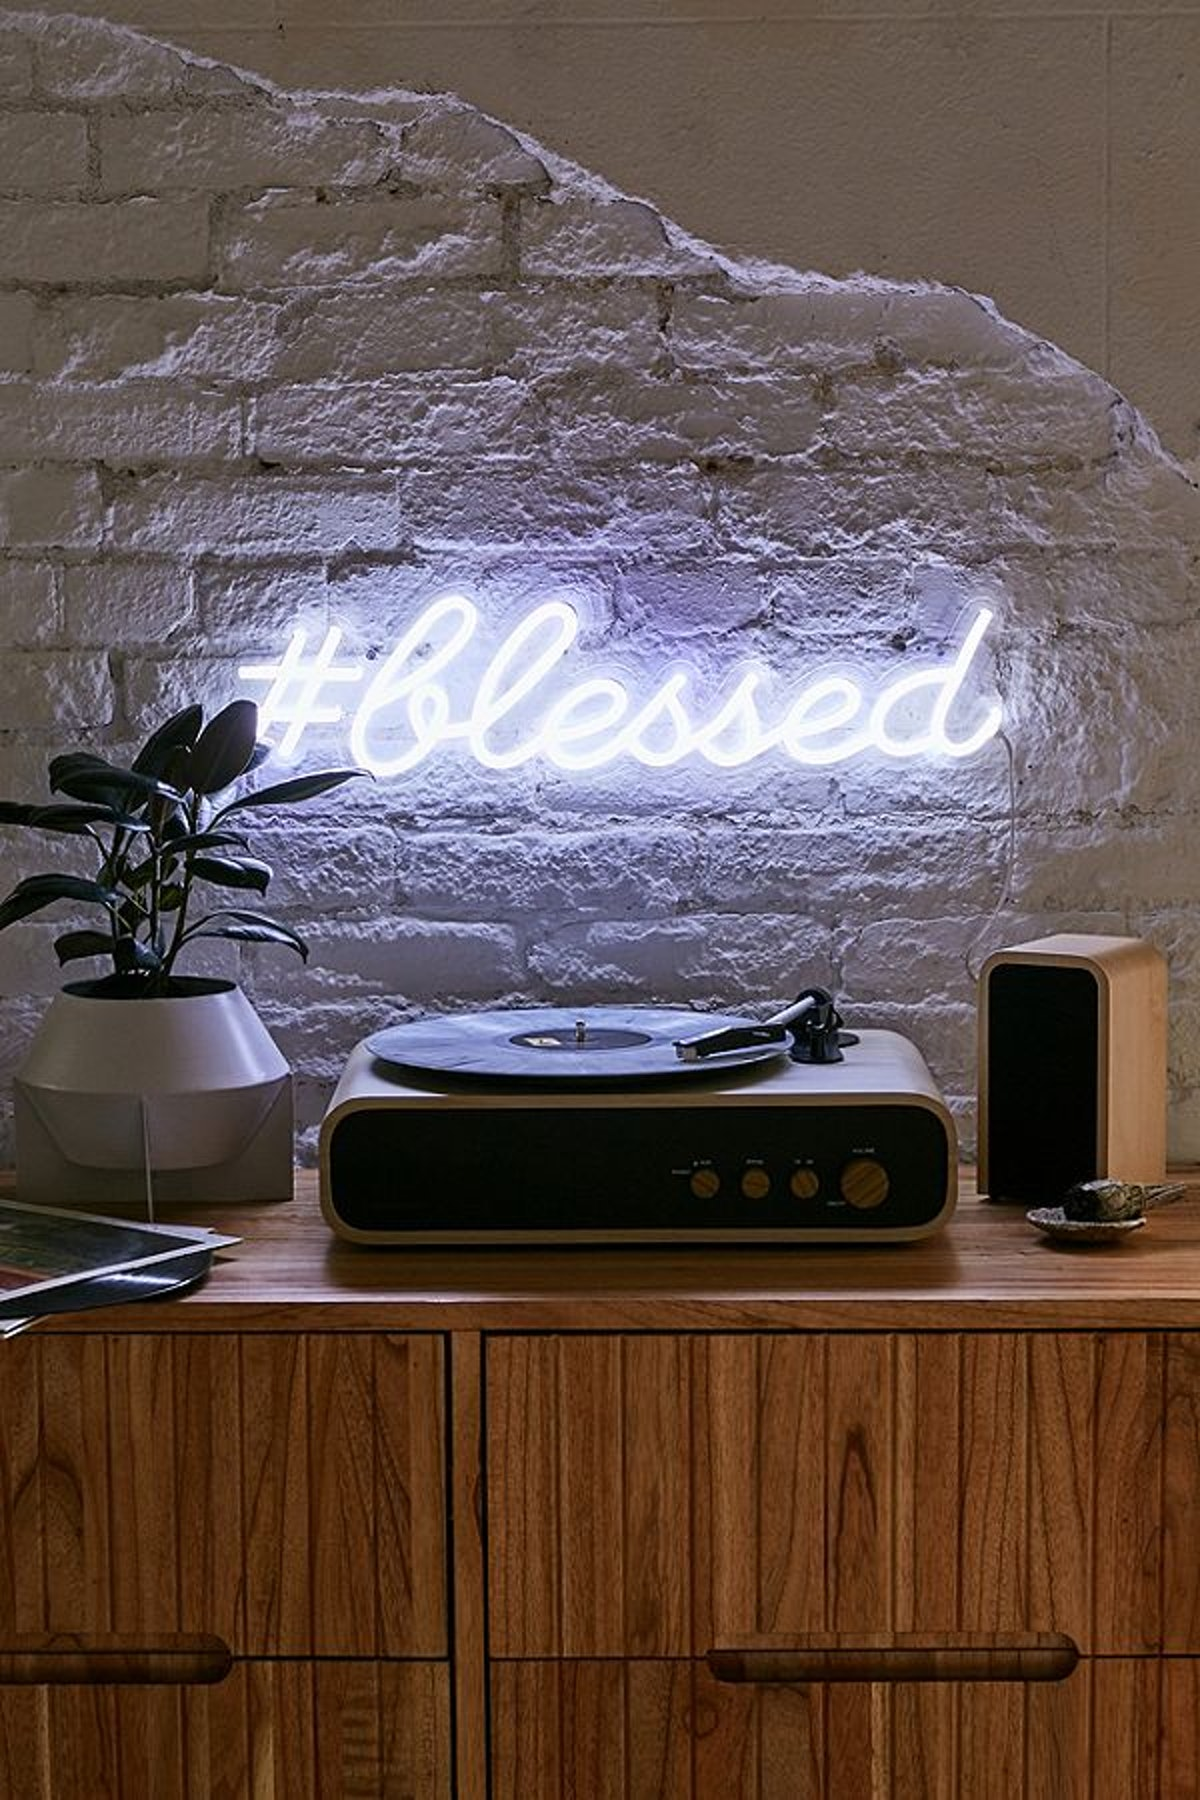 The Oliver Gal Artist Co. #Blessed LED Neon Sign